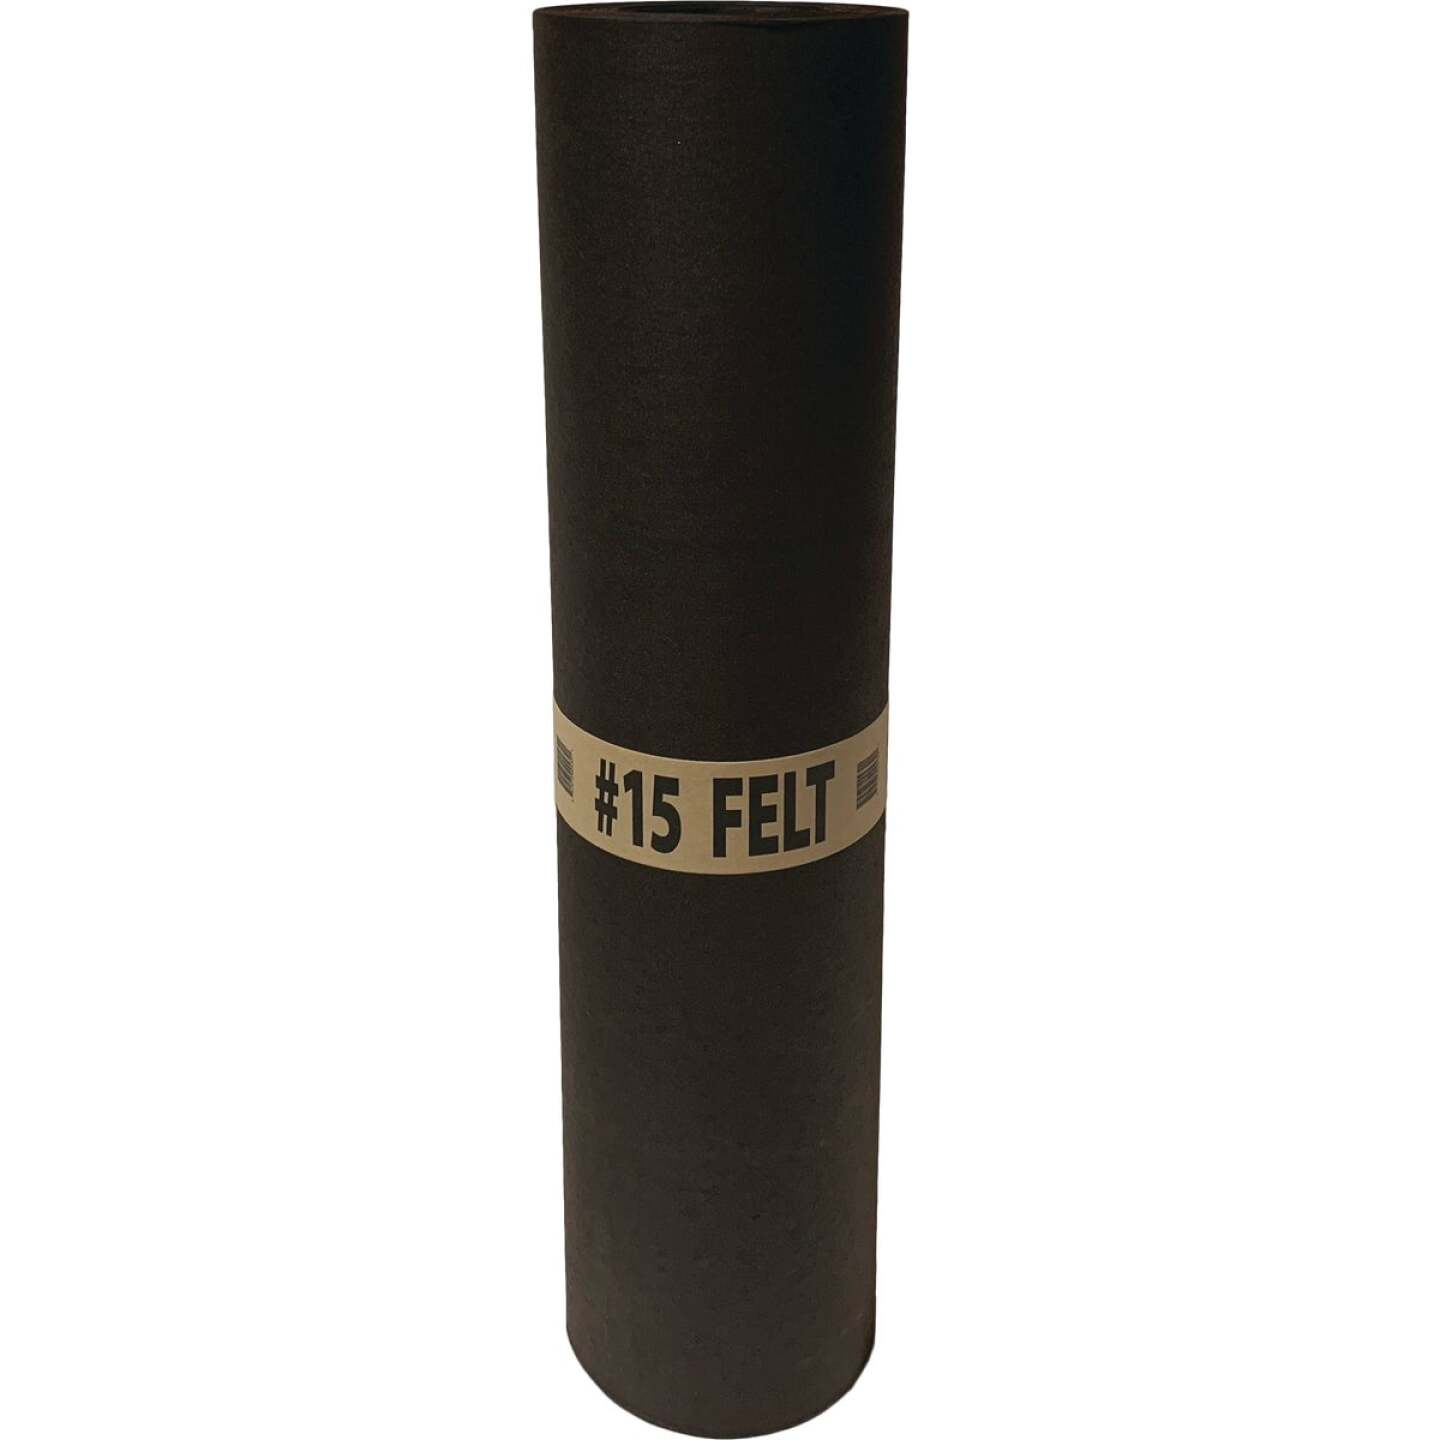 Warrior 36 In. x 144 Ft. Non-Rated 15 lb Roof Felt, Asphalt Saturated Image 1